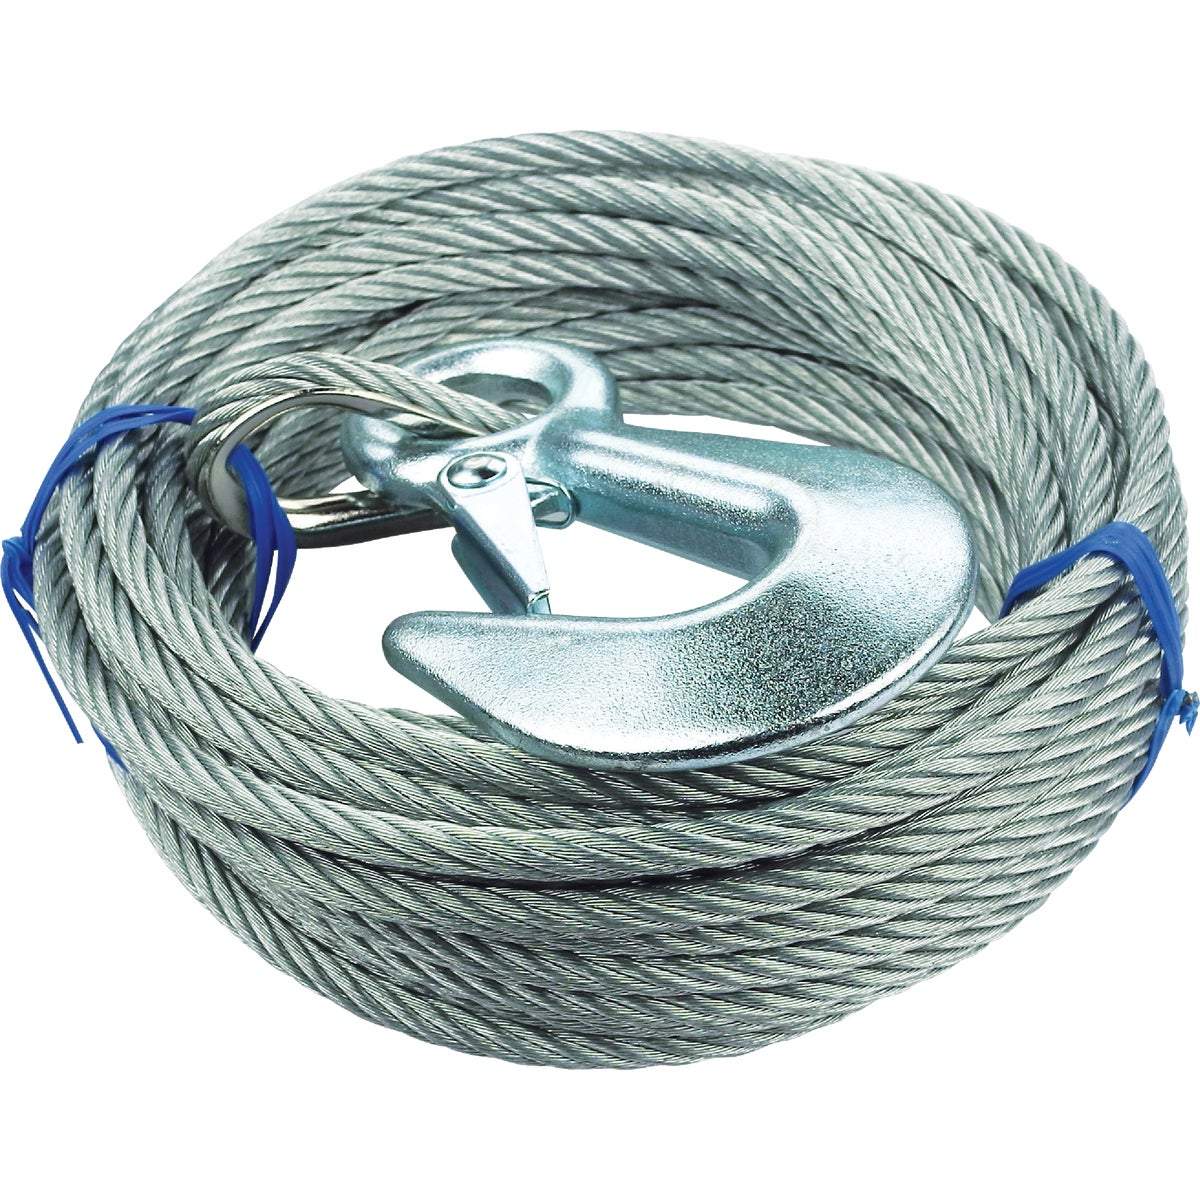 "3/16""X25' WINCH CABLE - 51181 by Seachoice Prod"